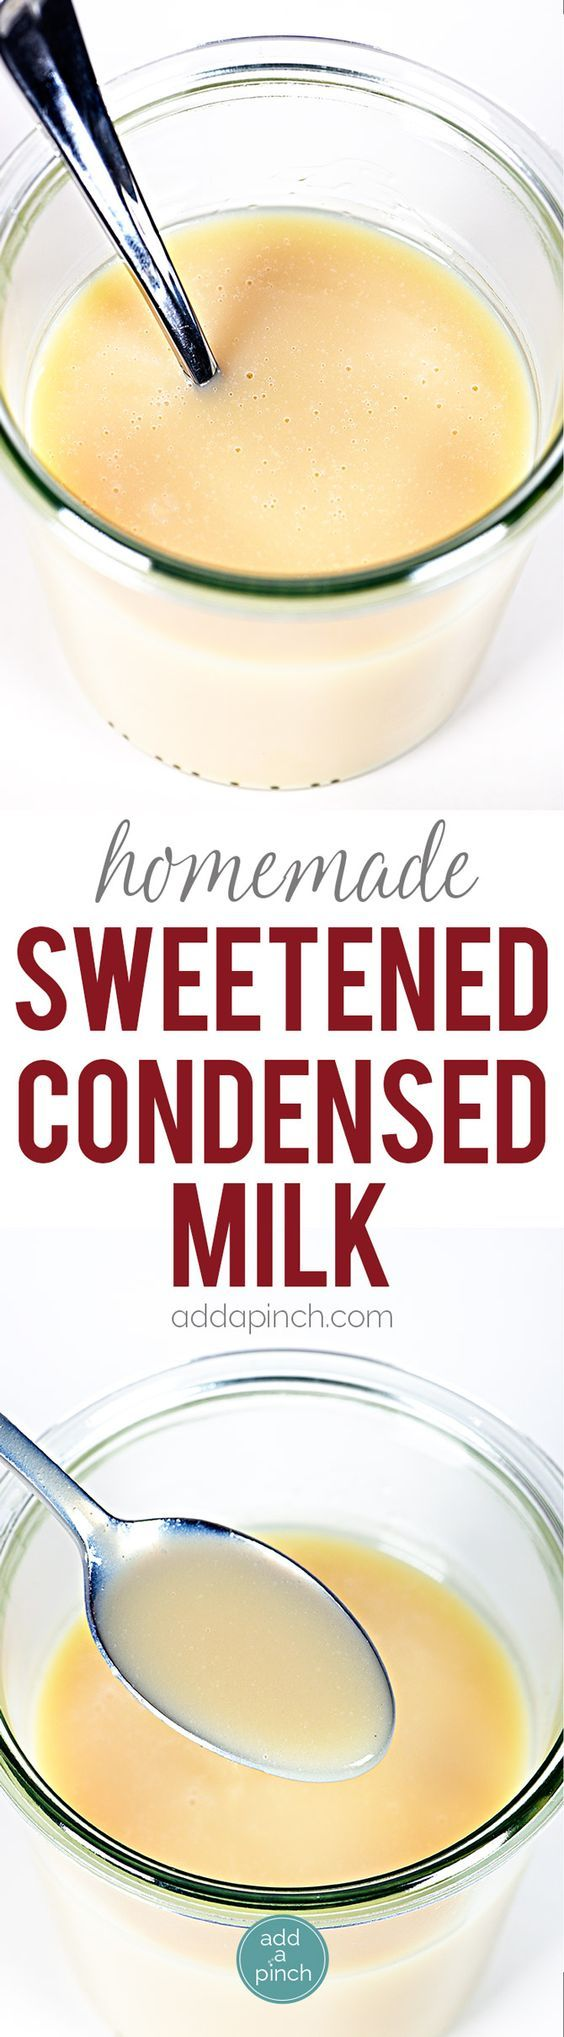 100 goat milk recipes goat milk soap homemade homemade sweetened condensed milk